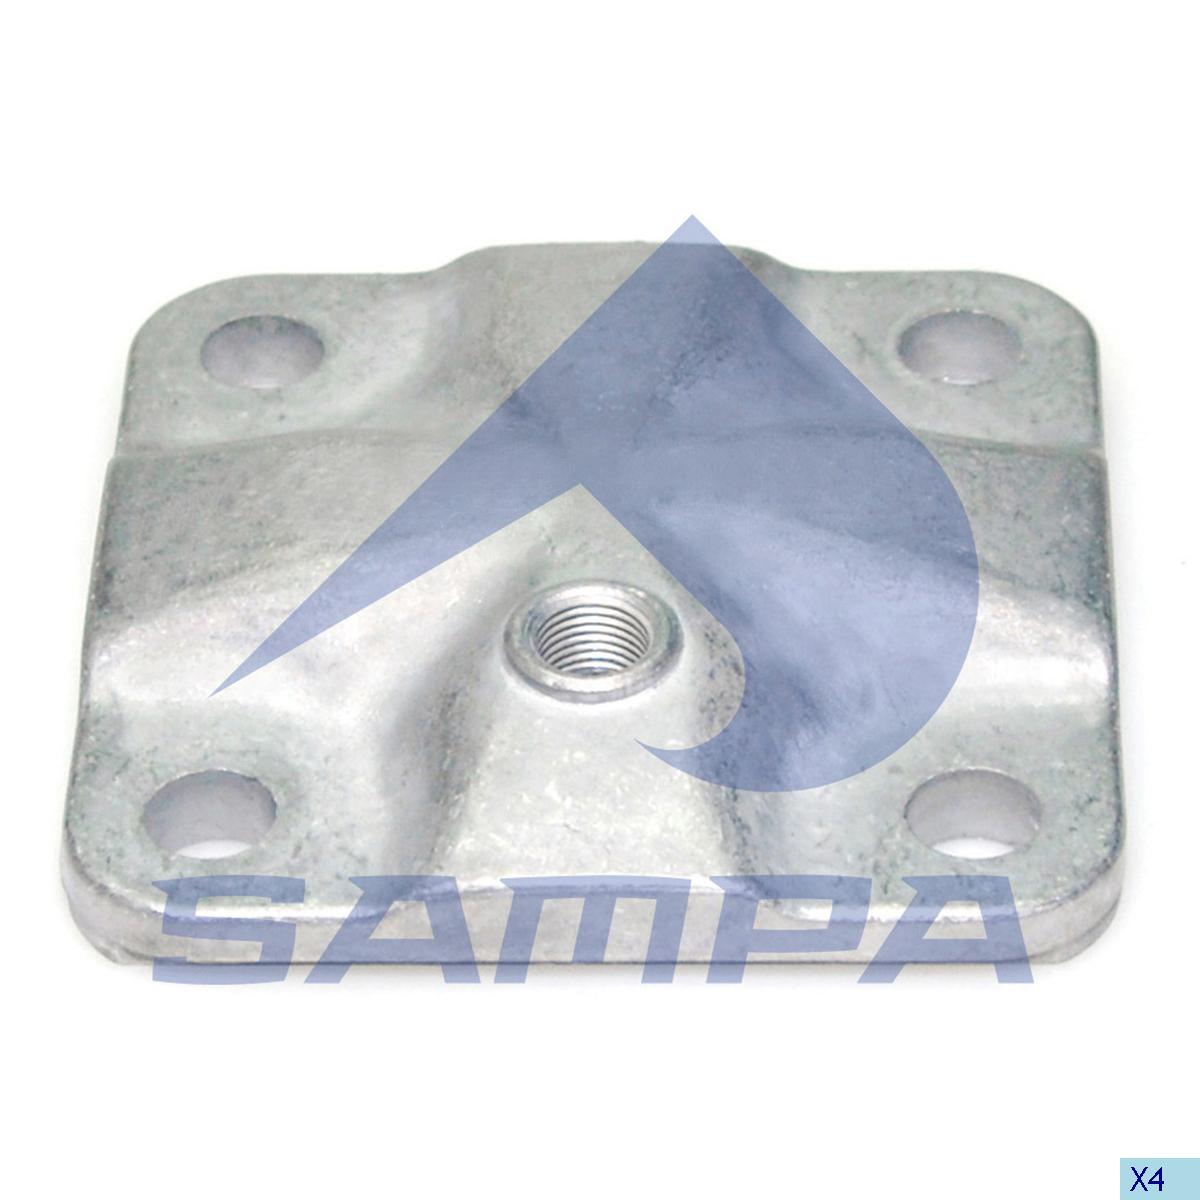 Cover, Axle Steering Knuckle, Volvo, Power Unit